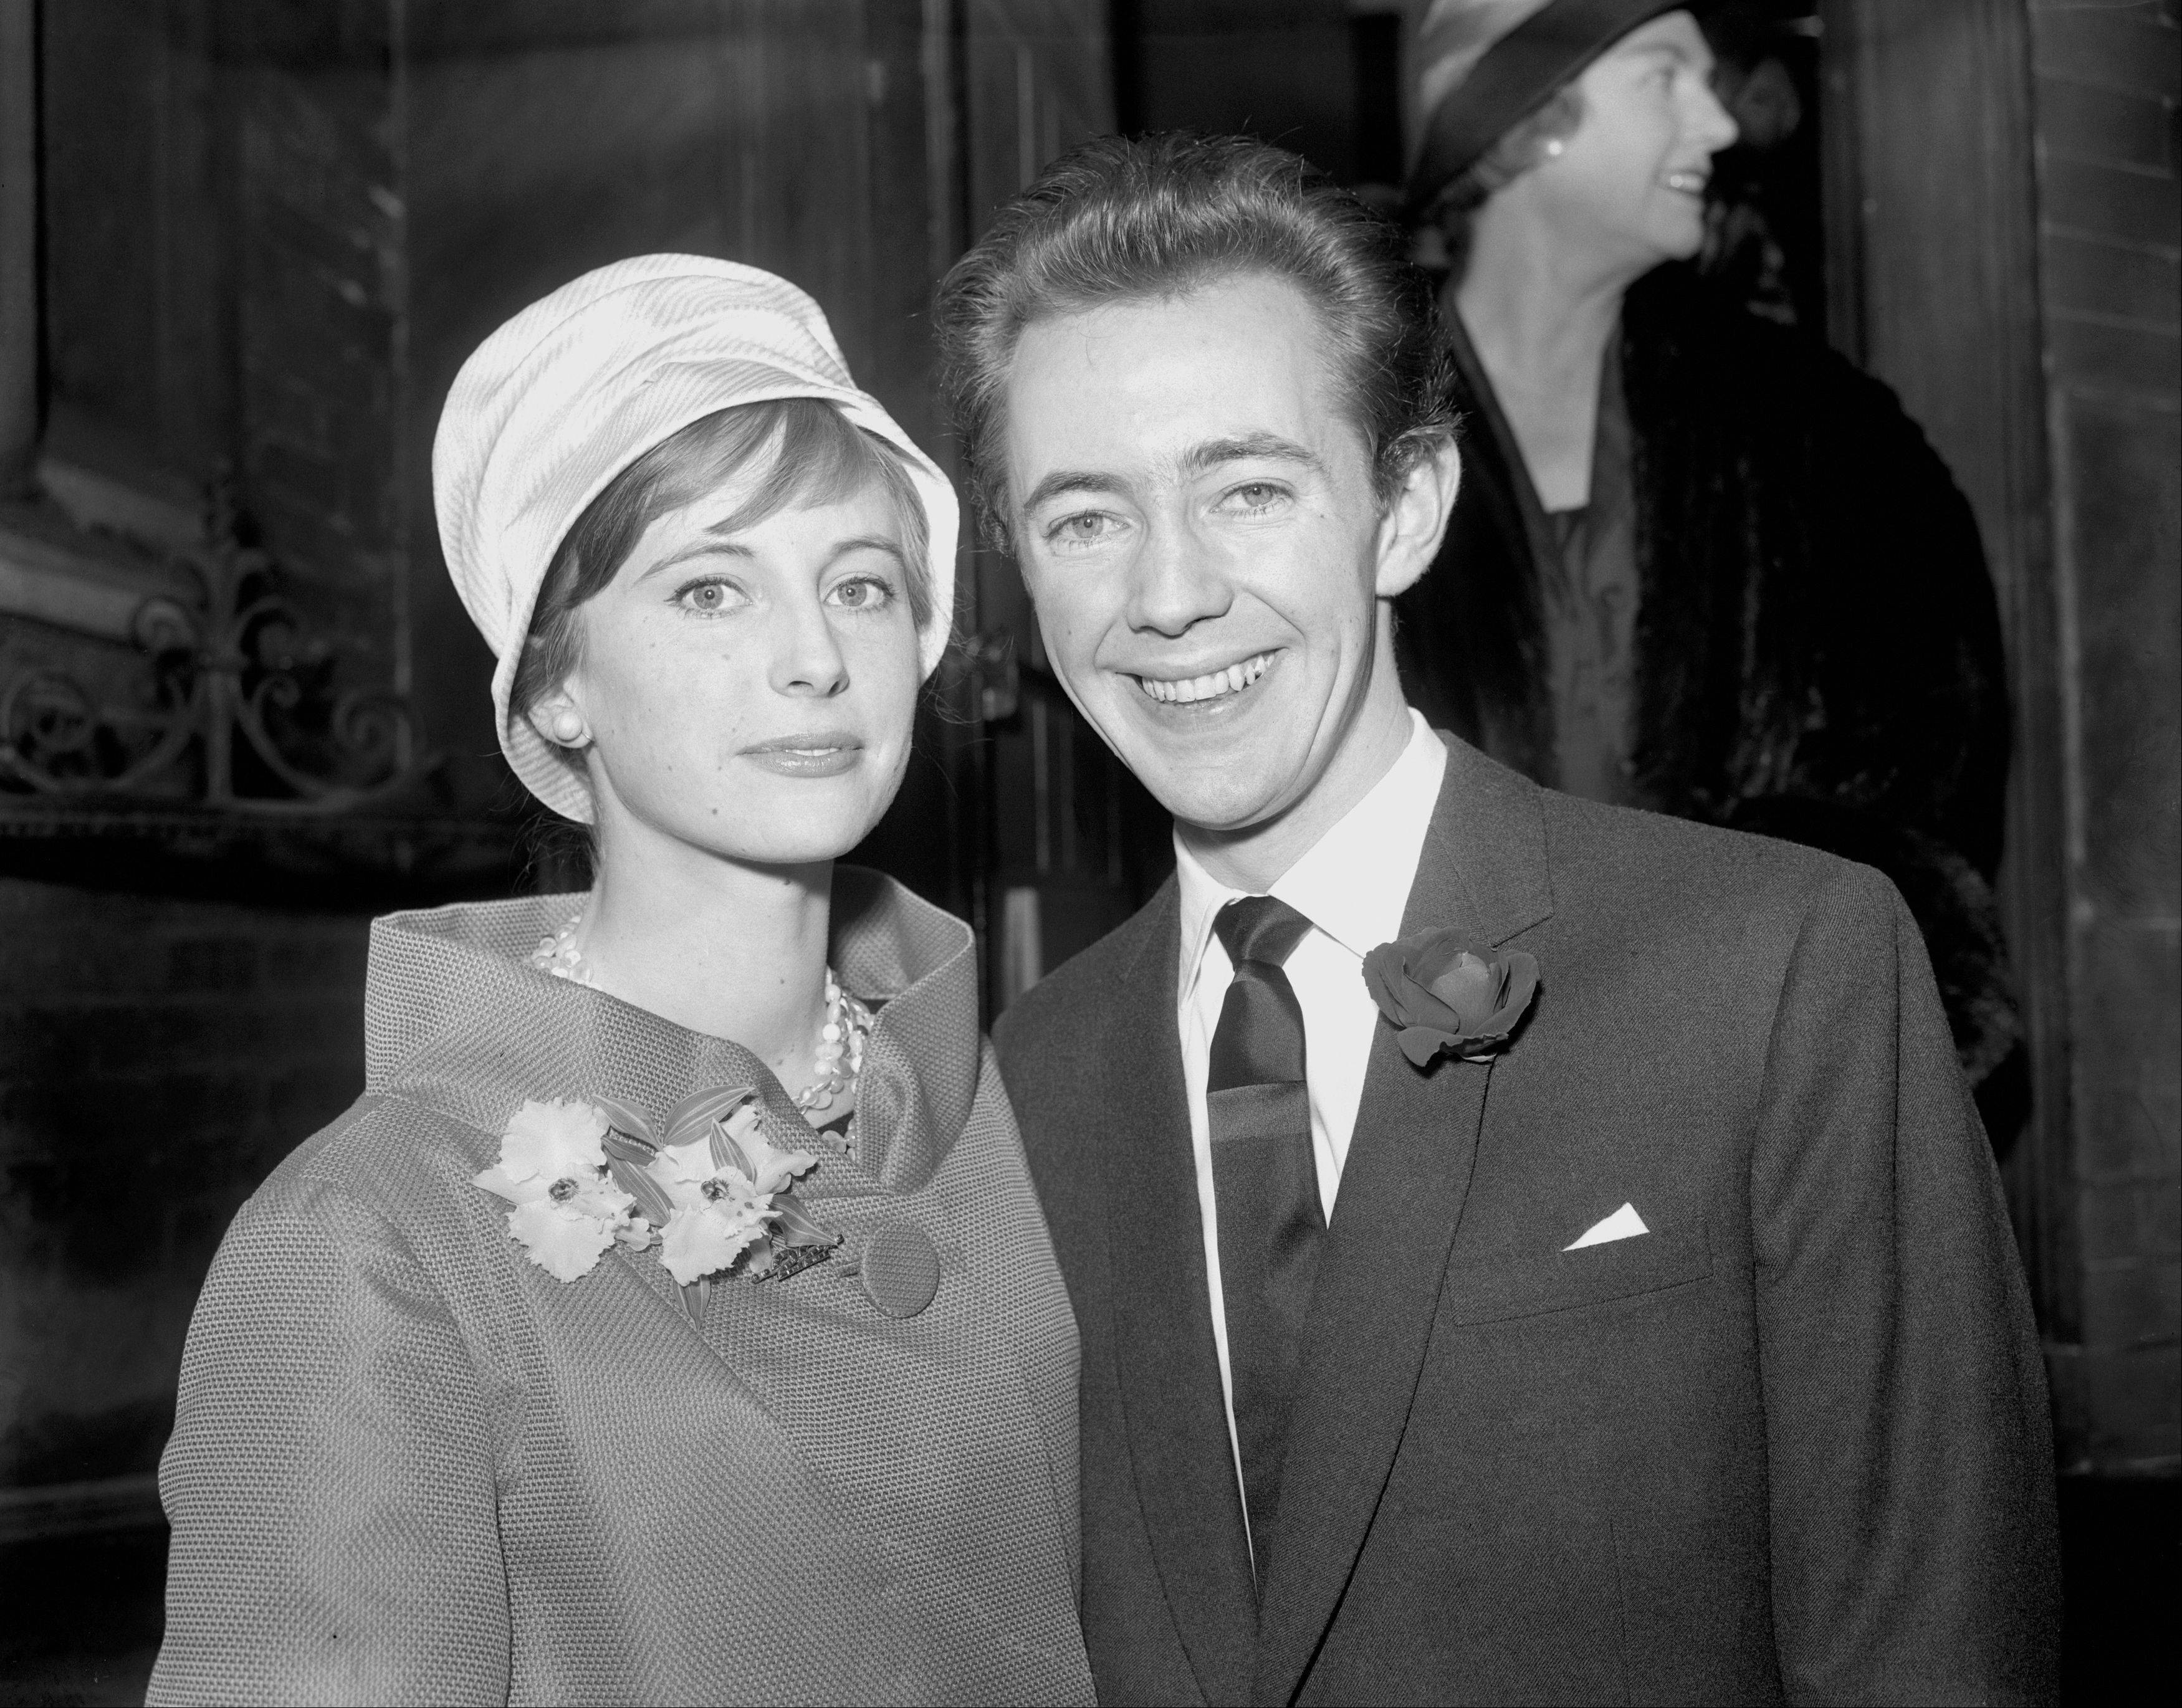 British actor and musician Noel Harrison, and his bride, Sara Tufnell, at the register office after their wedding at Caxton Hall, Westminster, London.